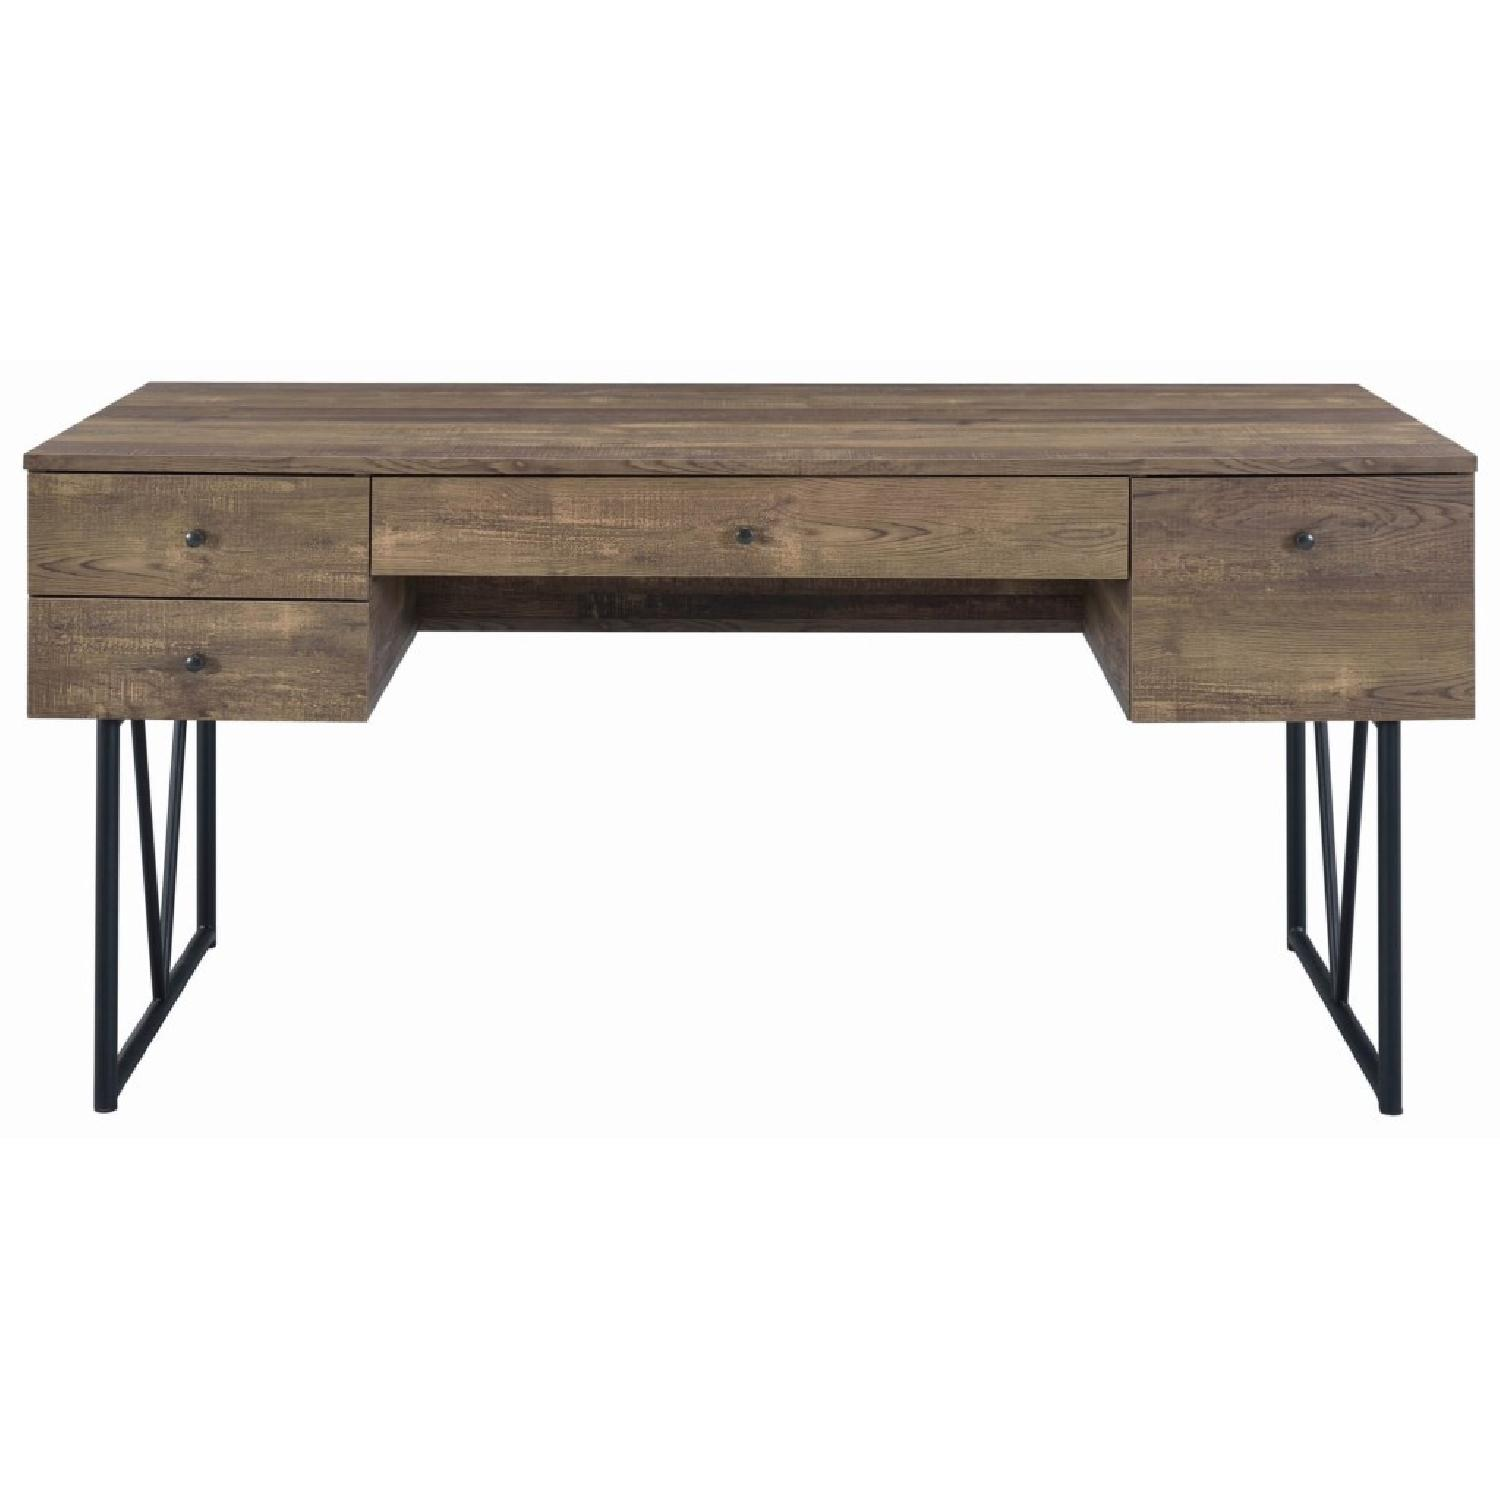 Rustic Oak Desk w/ Black Metal Frame Legs - image-0